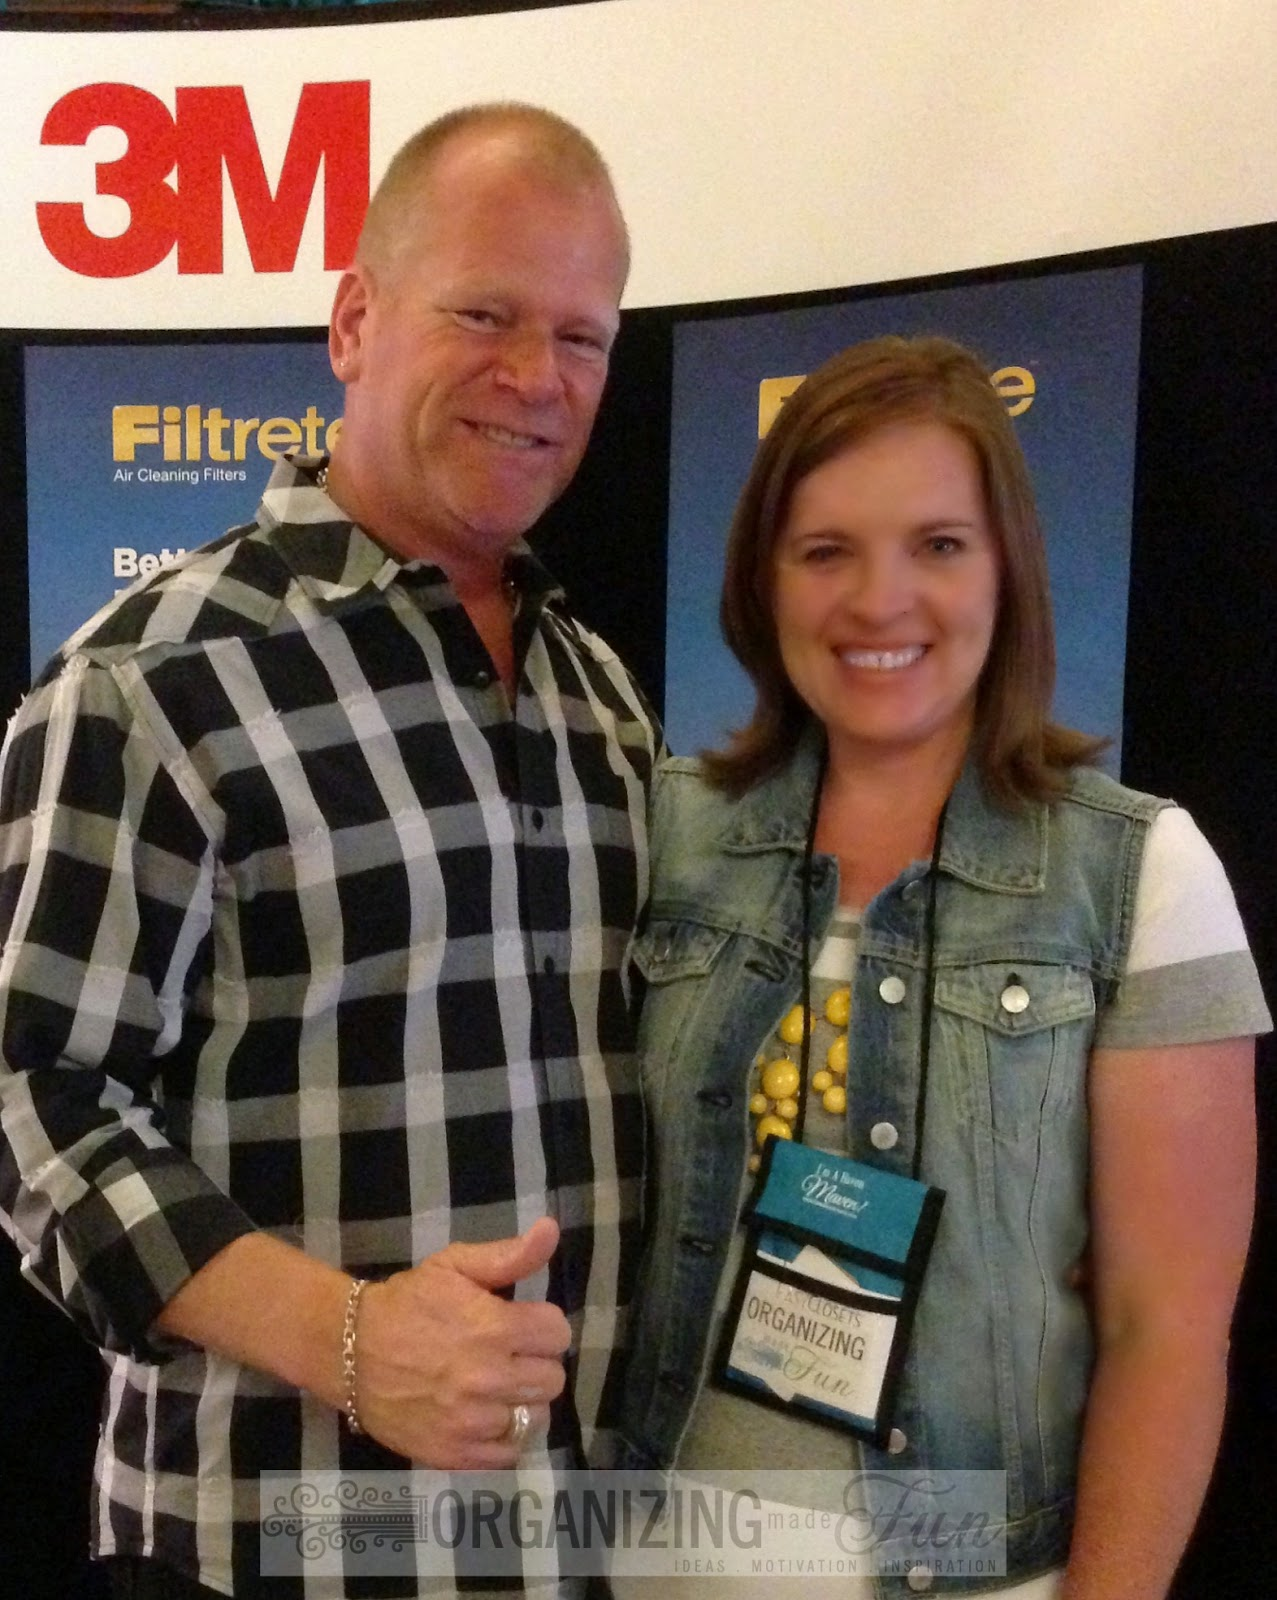 Mike Holmes and I :: OrganizingMadeFun.com